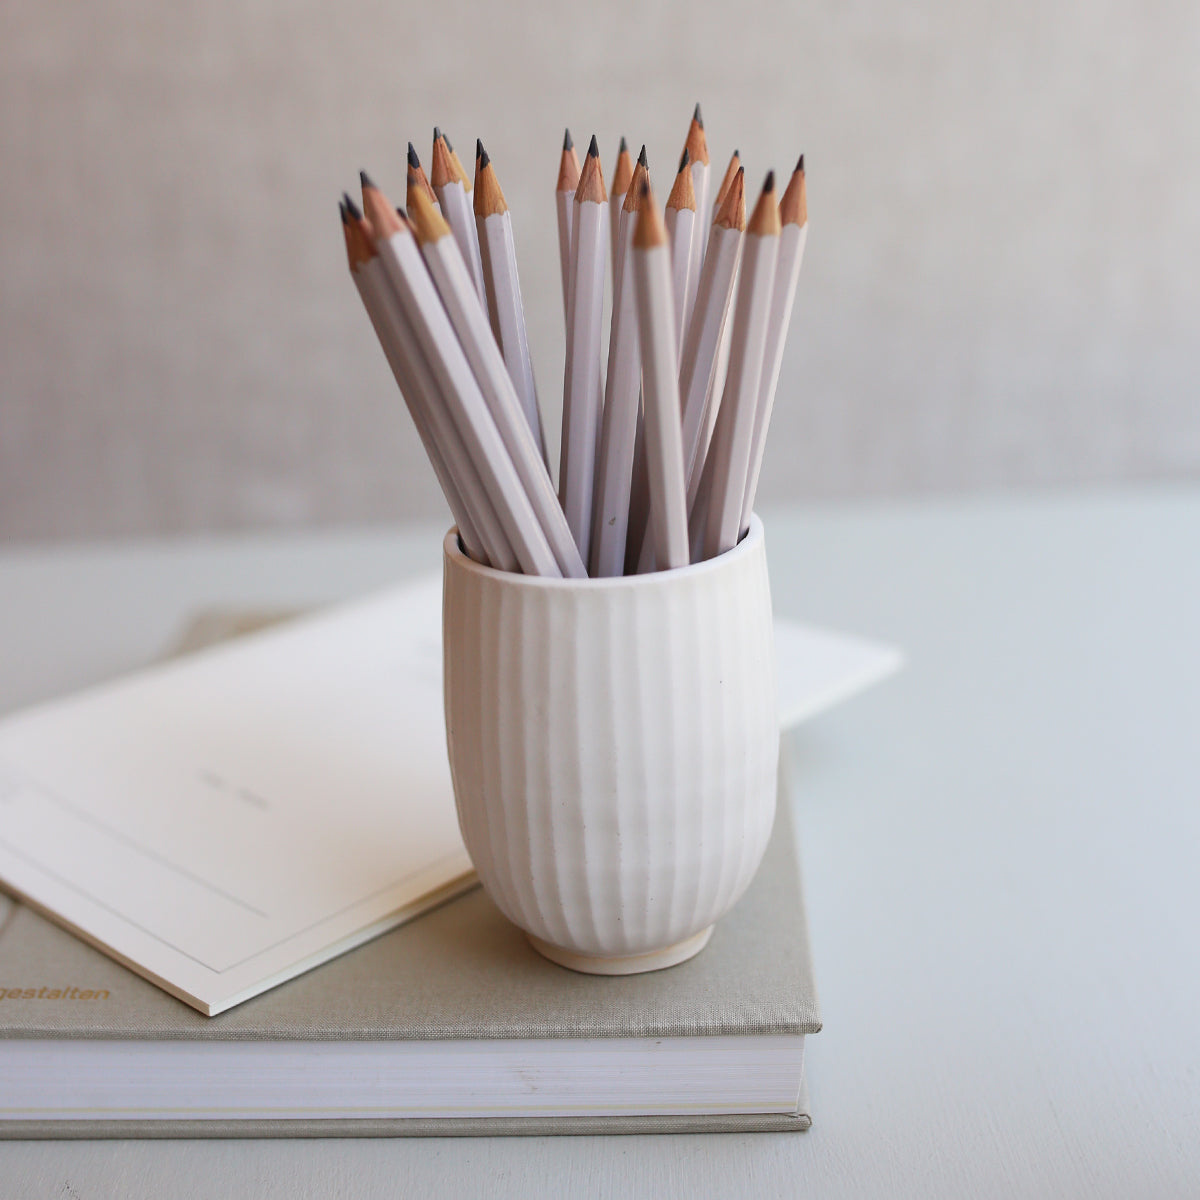 PEN HOLDER // CURVED + CEDAR WOOD PENCILS (5 PCS)